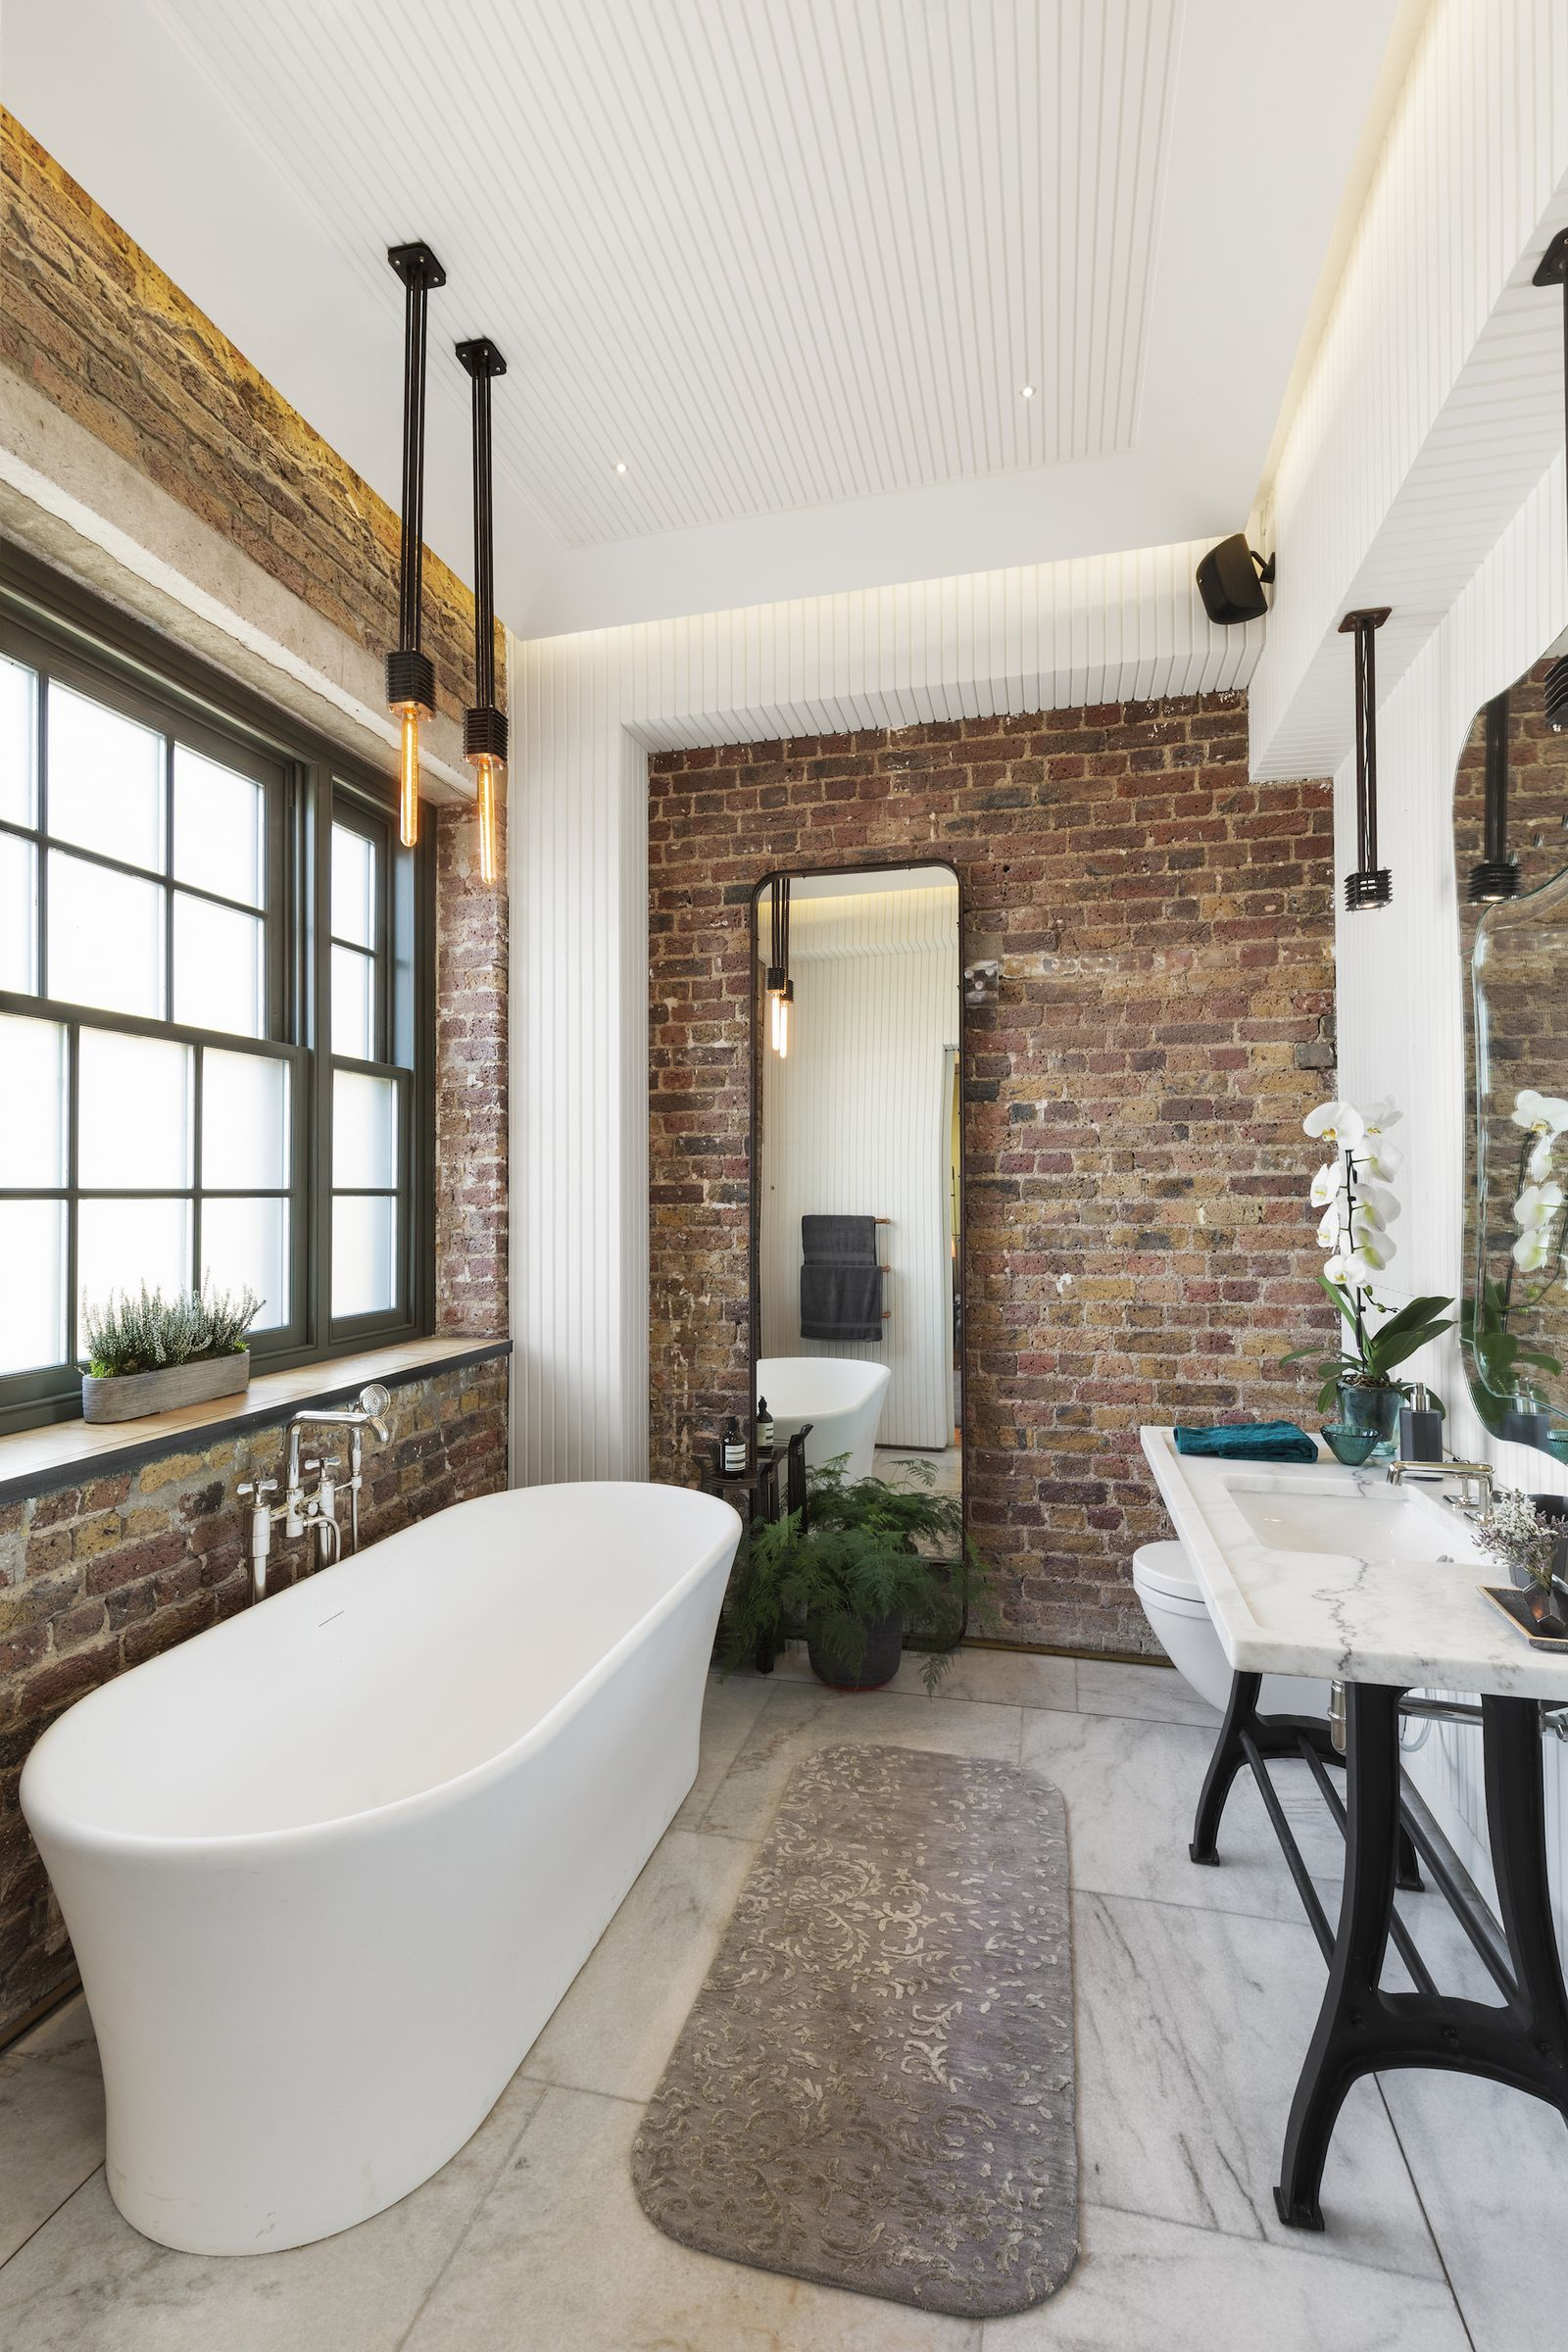 Photo of Industrial-style loft apartment for sale in Camden comes with VIP access to private club lounge